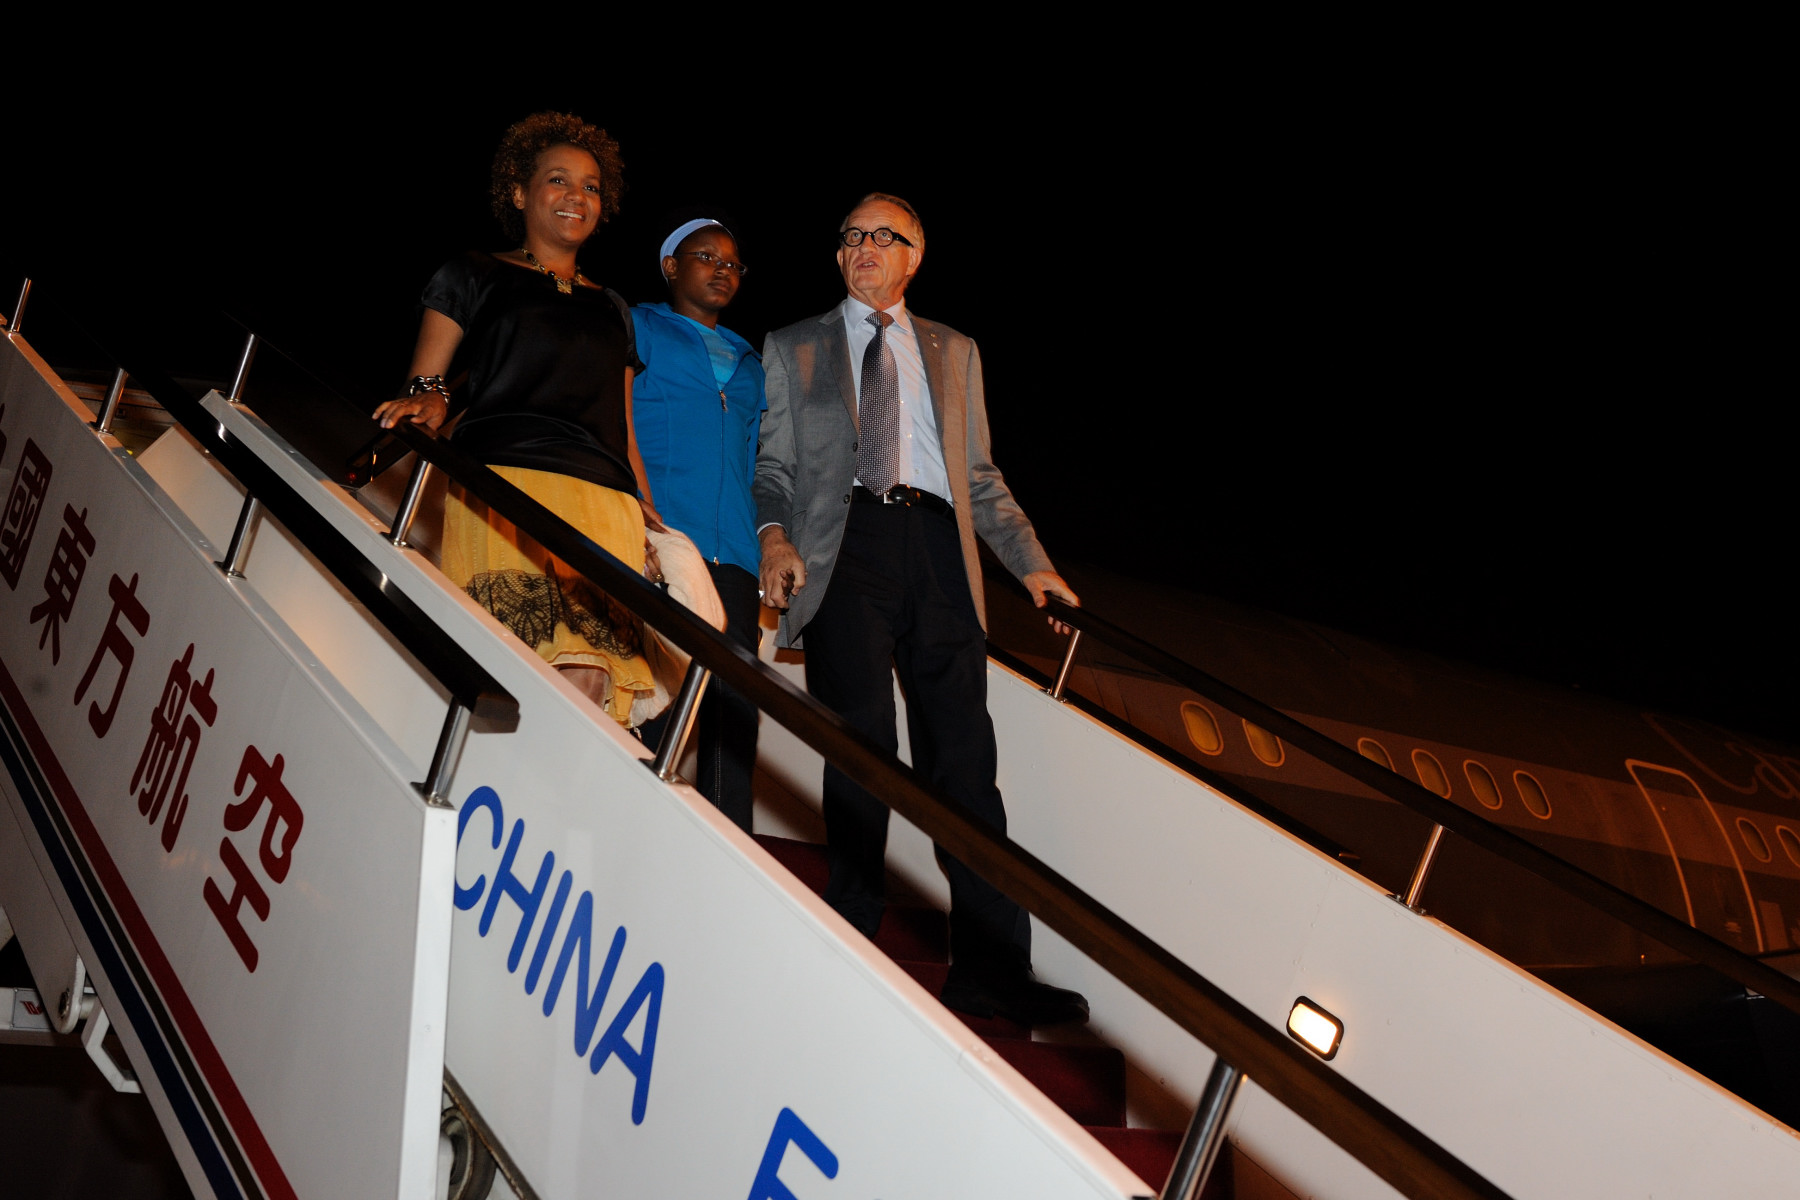 Their Excellencies and Marie-Éden as they arrived at Hongqiao International Airport in Shanghai.